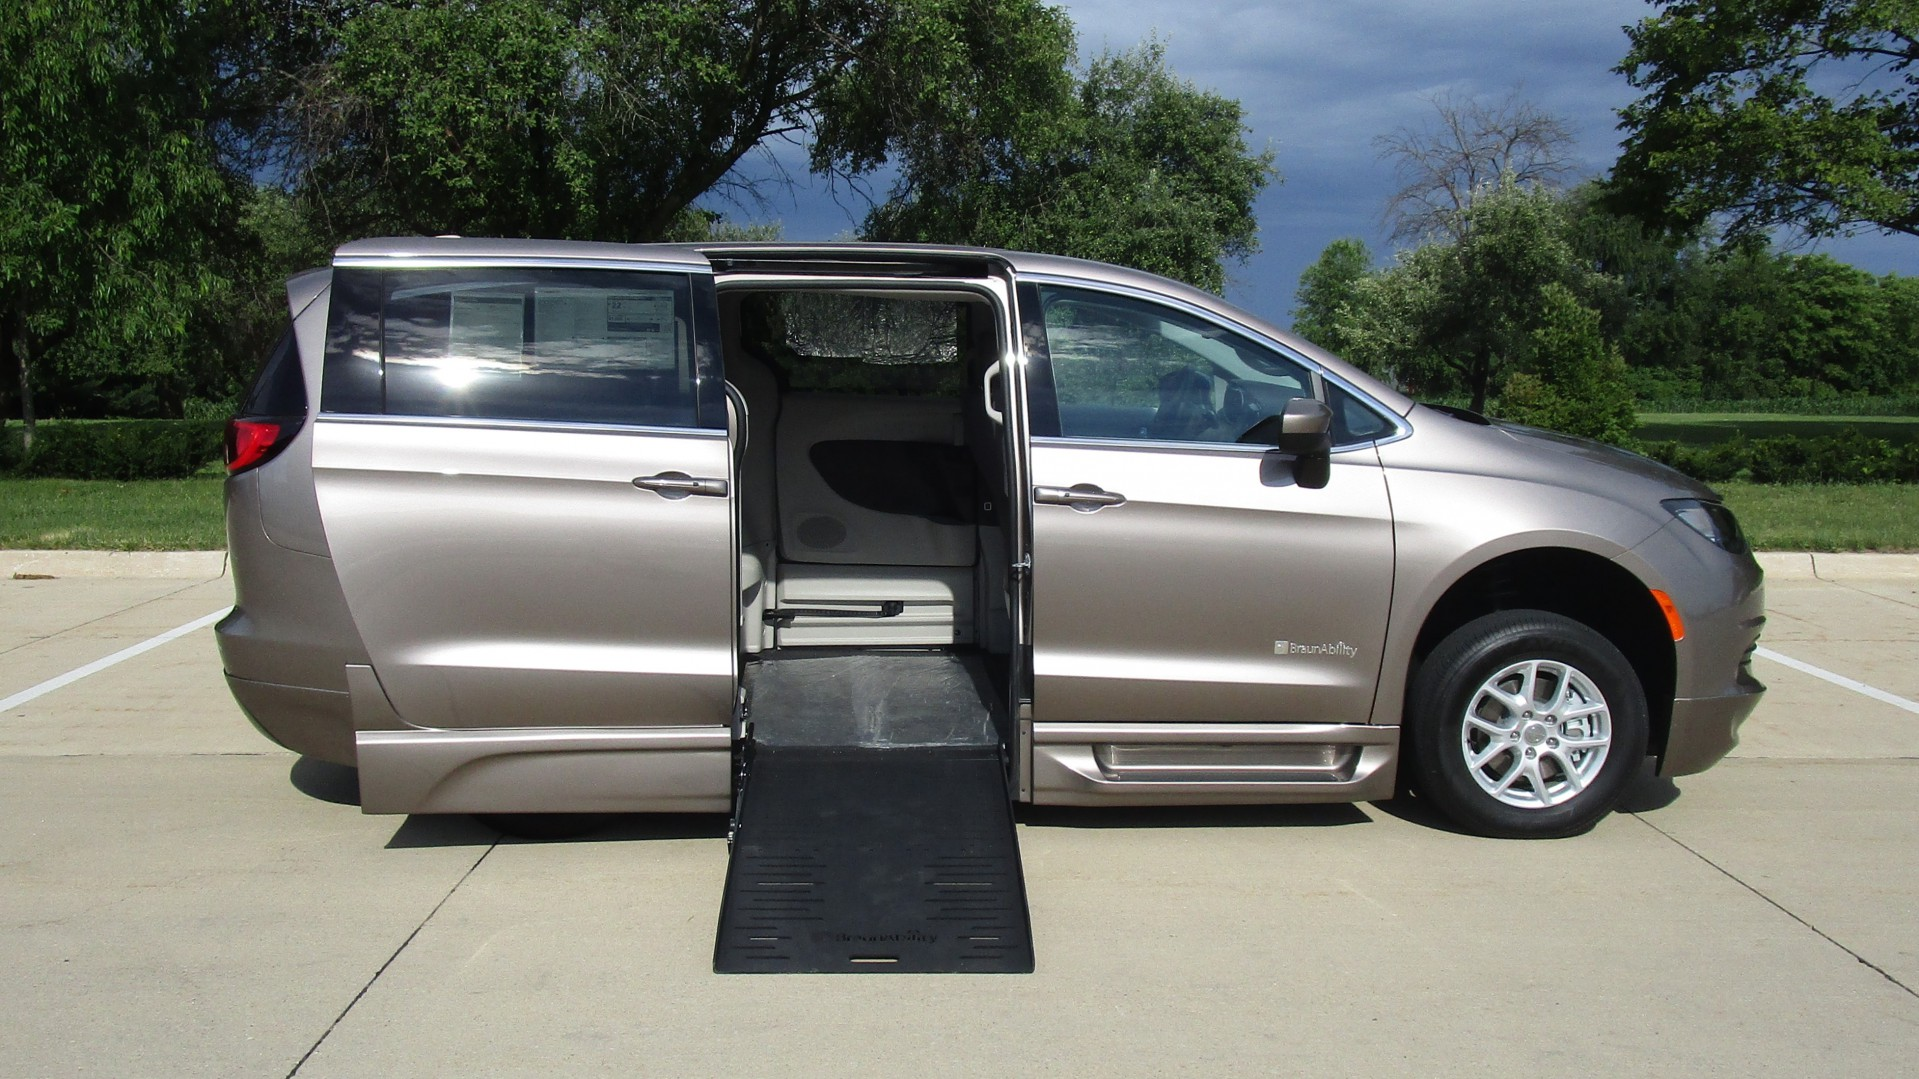 100 used chrysler pacifica for sale used chrysler pacifica for sale columbus ga cargurus. Black Bedroom Furniture Sets. Home Design Ideas